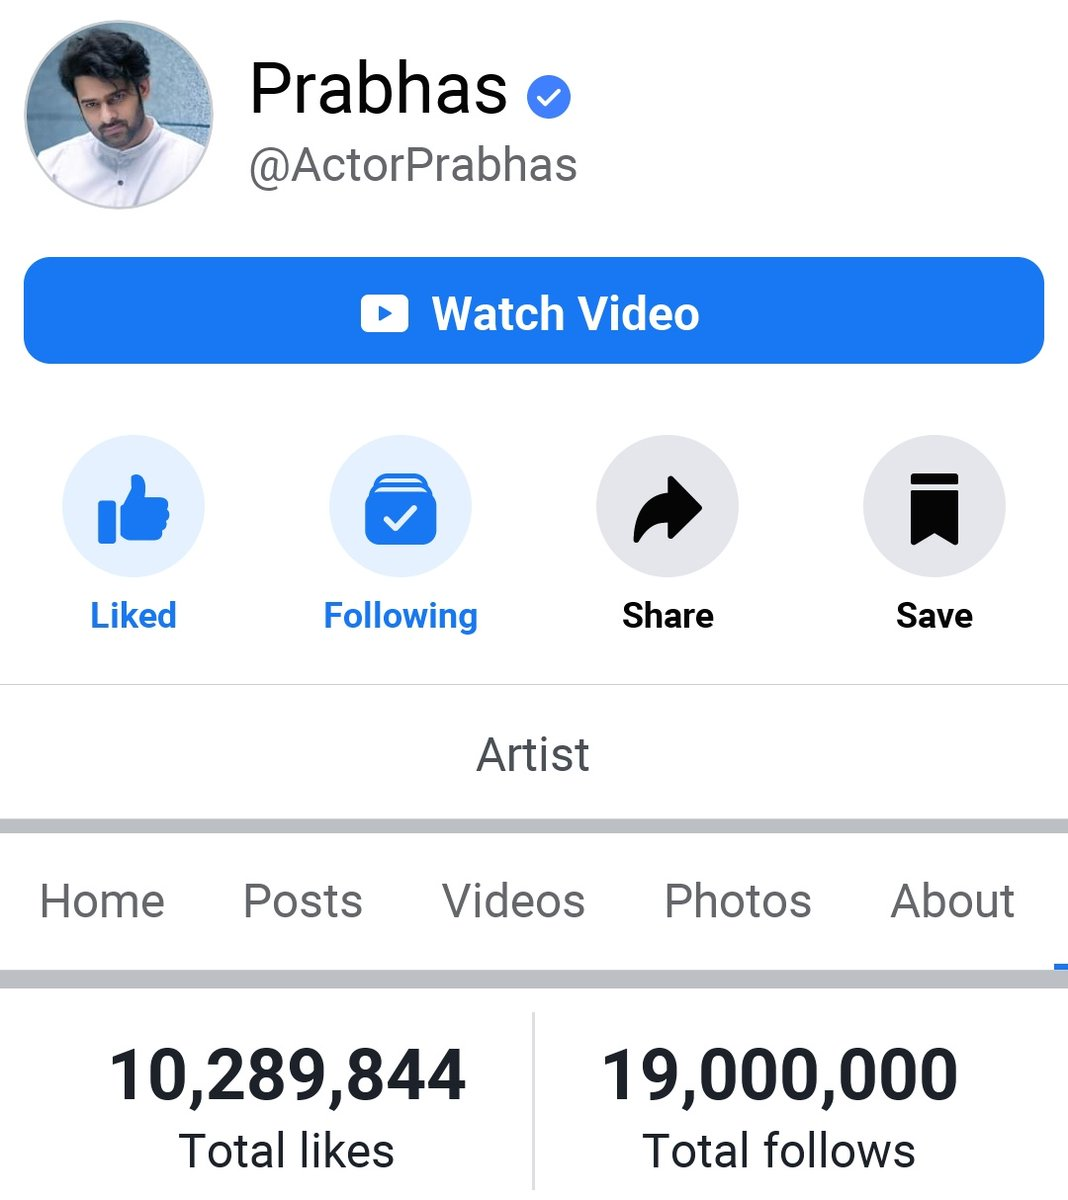 19M Followers For Rebel Star PRABHAS  In Facebook . Most Followed South Indian Actor On Facebook   #Prabhas __/\__  #RadheShyam #Prabhas21 #19MillionForPrabhasInFBpic.twitter.com/kVoFcsWypz